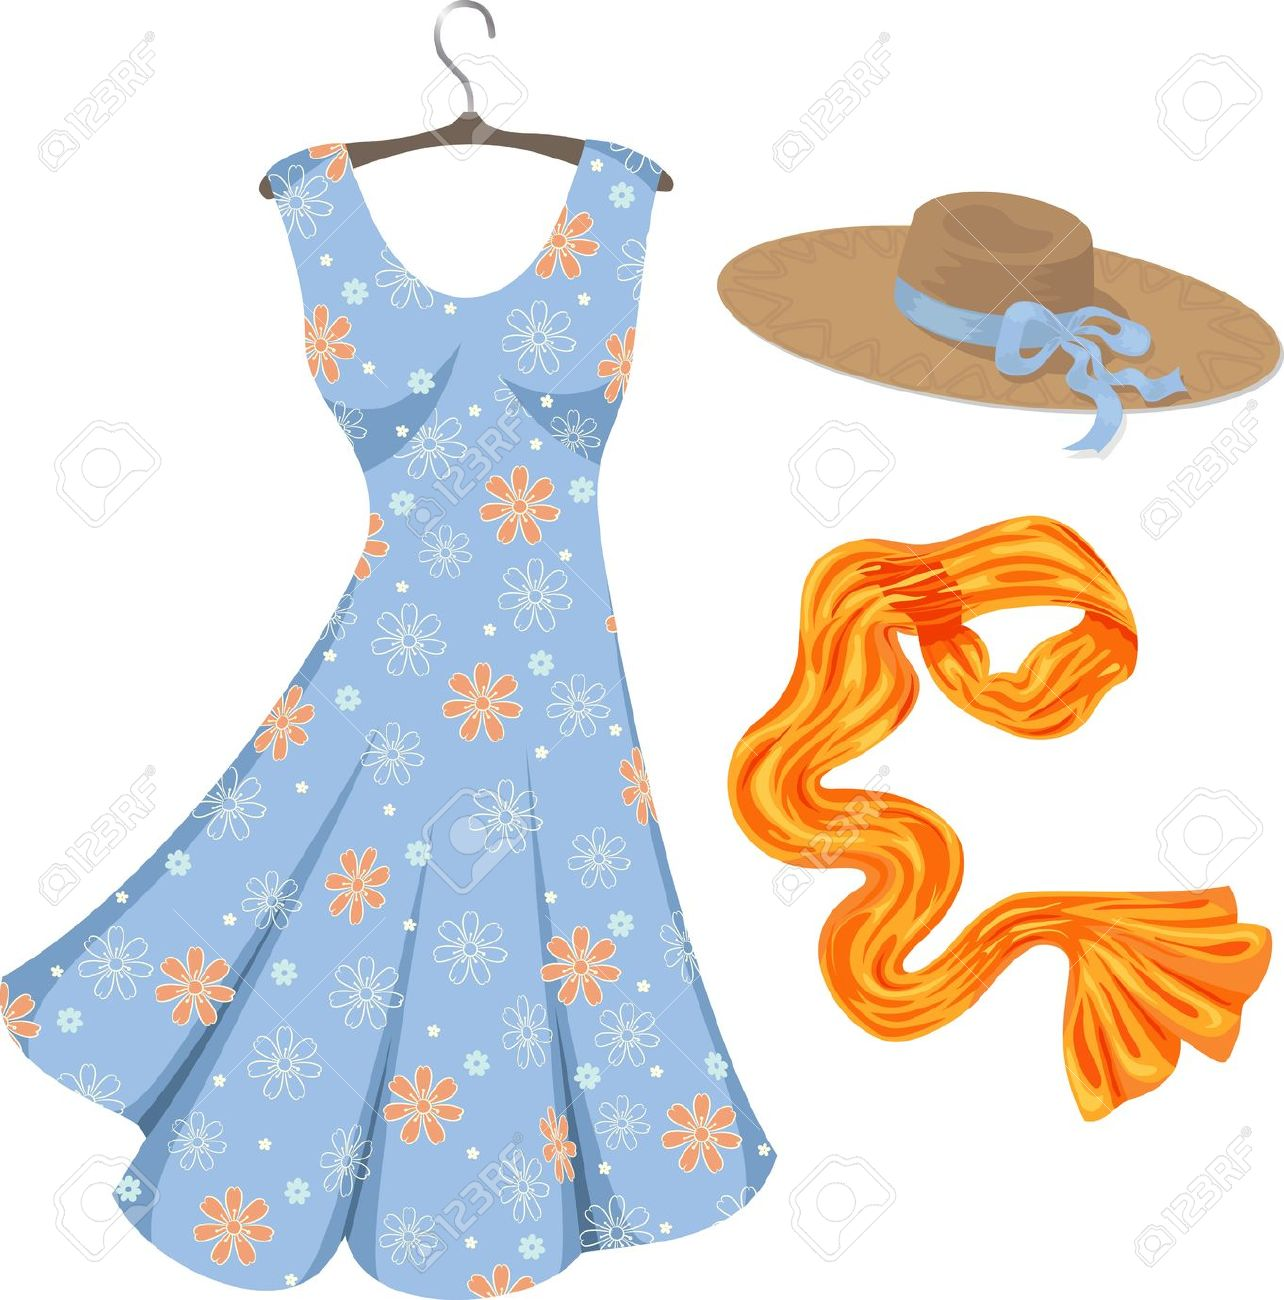 Spring dress clipart.